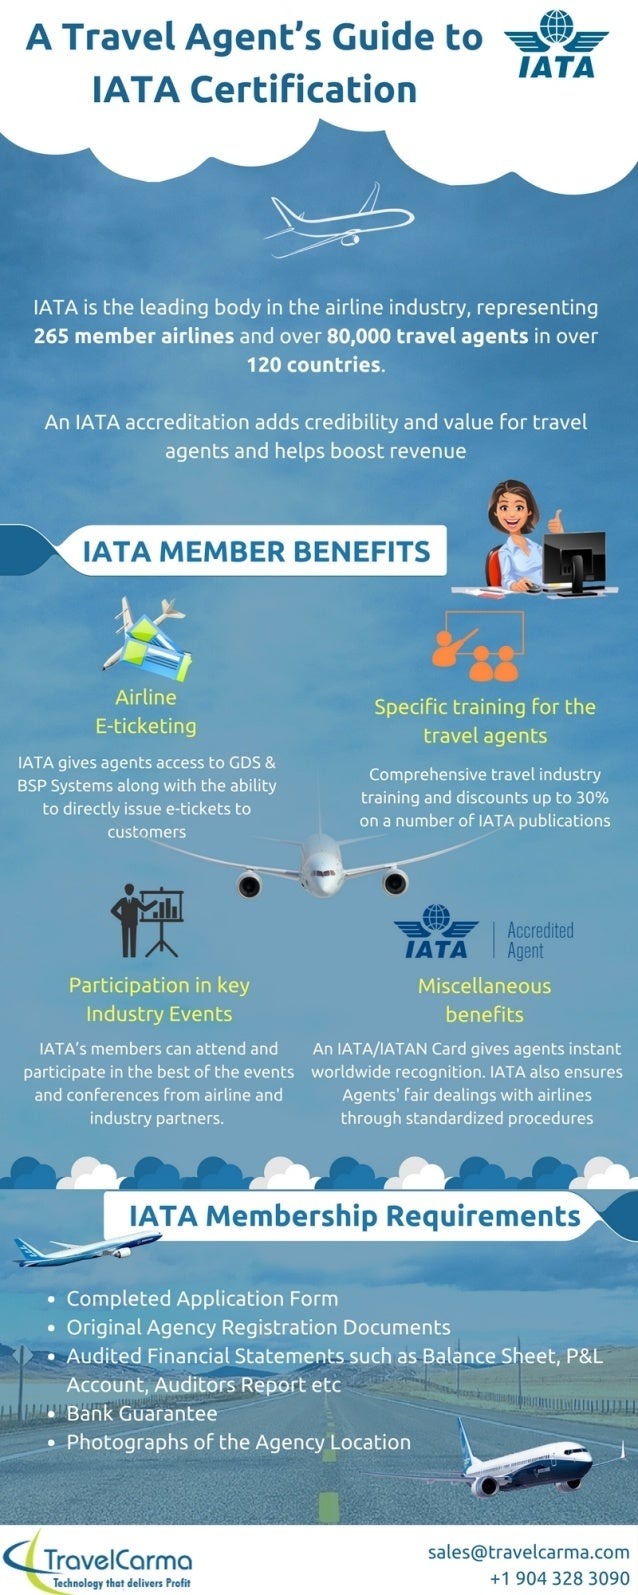 Iata Guide Catia Electrical Wire Routing 2 Ewr Generates Wires Within Traffic 1982 Array A Travel Agent U0027s To Certification Rh Slideshare